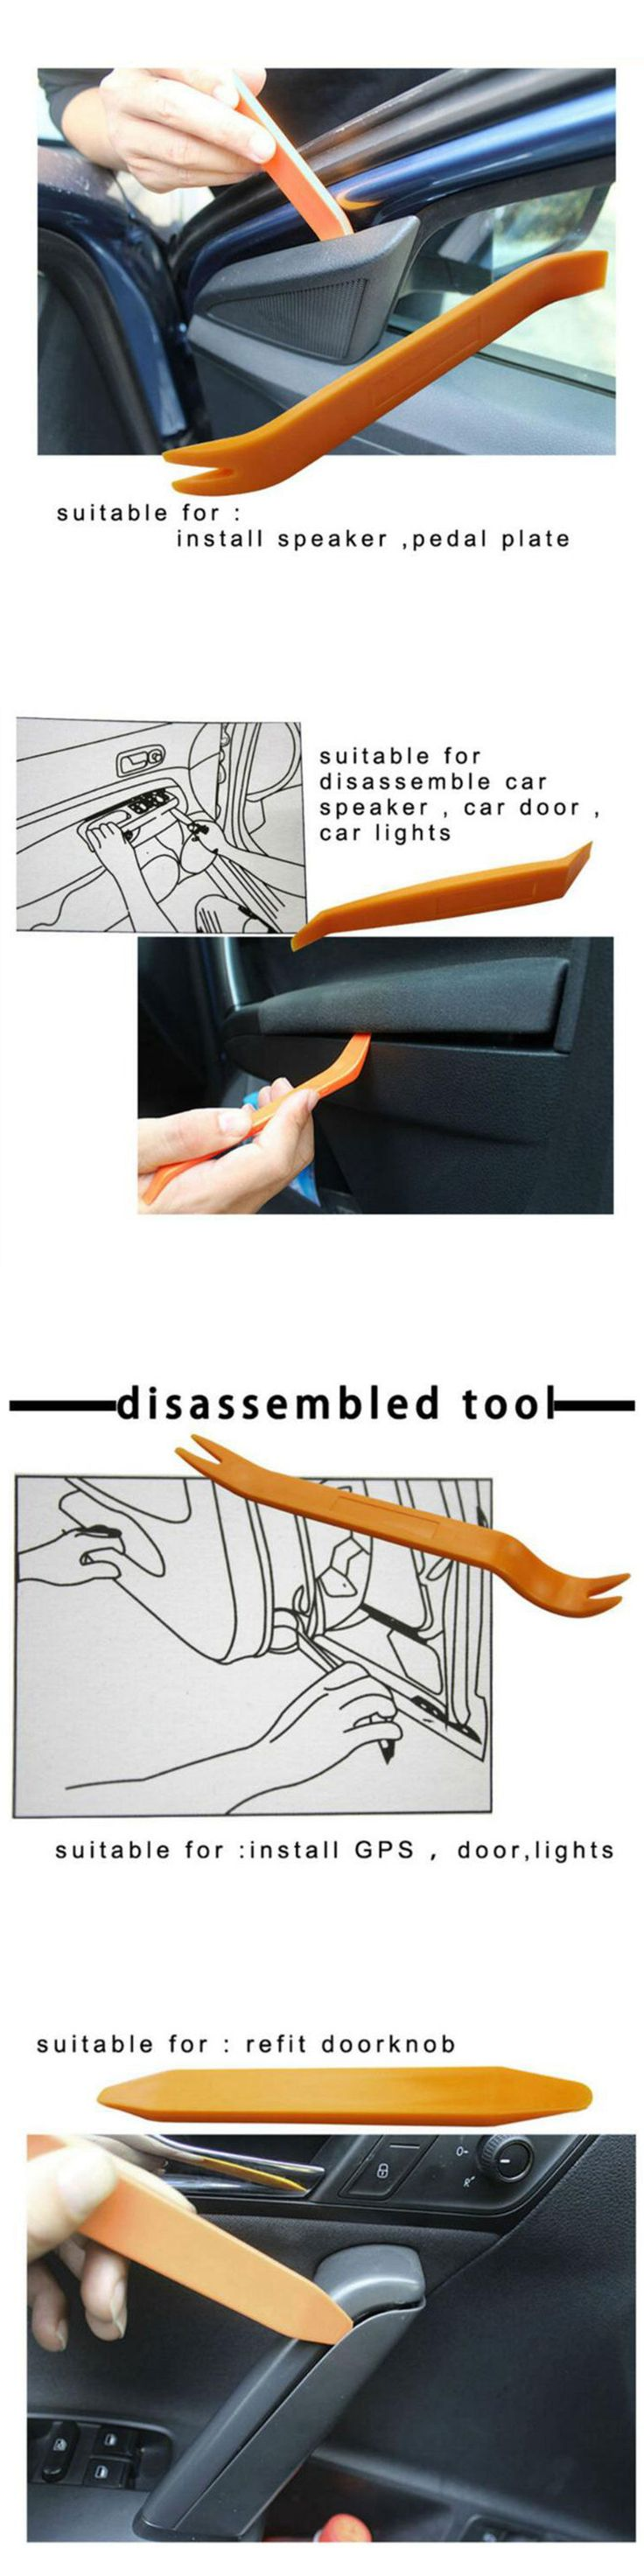 Car Audio Video And GPS: 4Pcs Professional Car Auto Dismantle Tools Kit For Audio System And Gps Video -> BUY IT NOW ONLY: $0.06 on eBay!